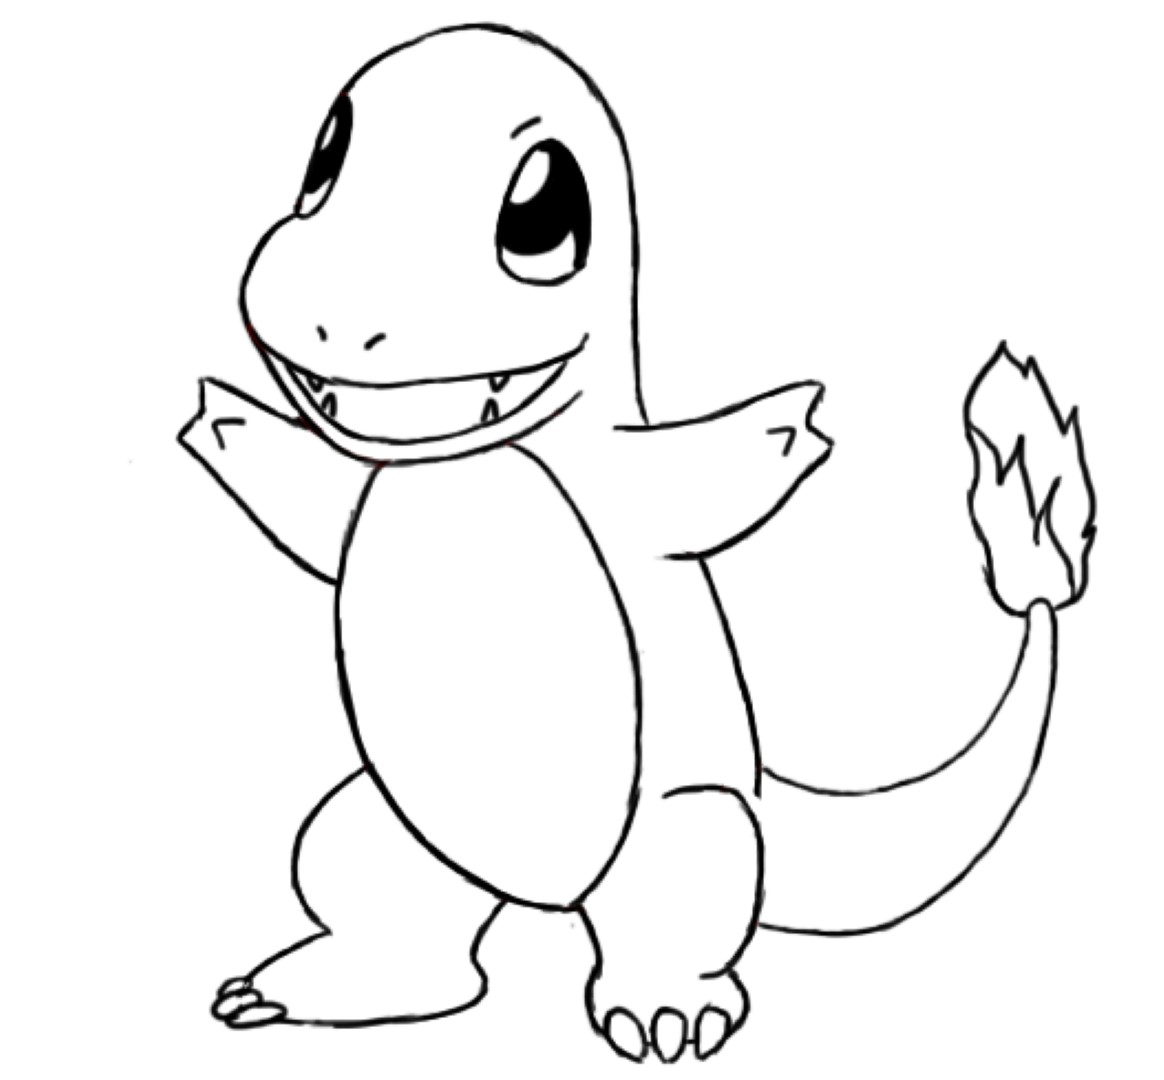 Charmander coloring pages to download and print for free for Drawing websites that you can draw on